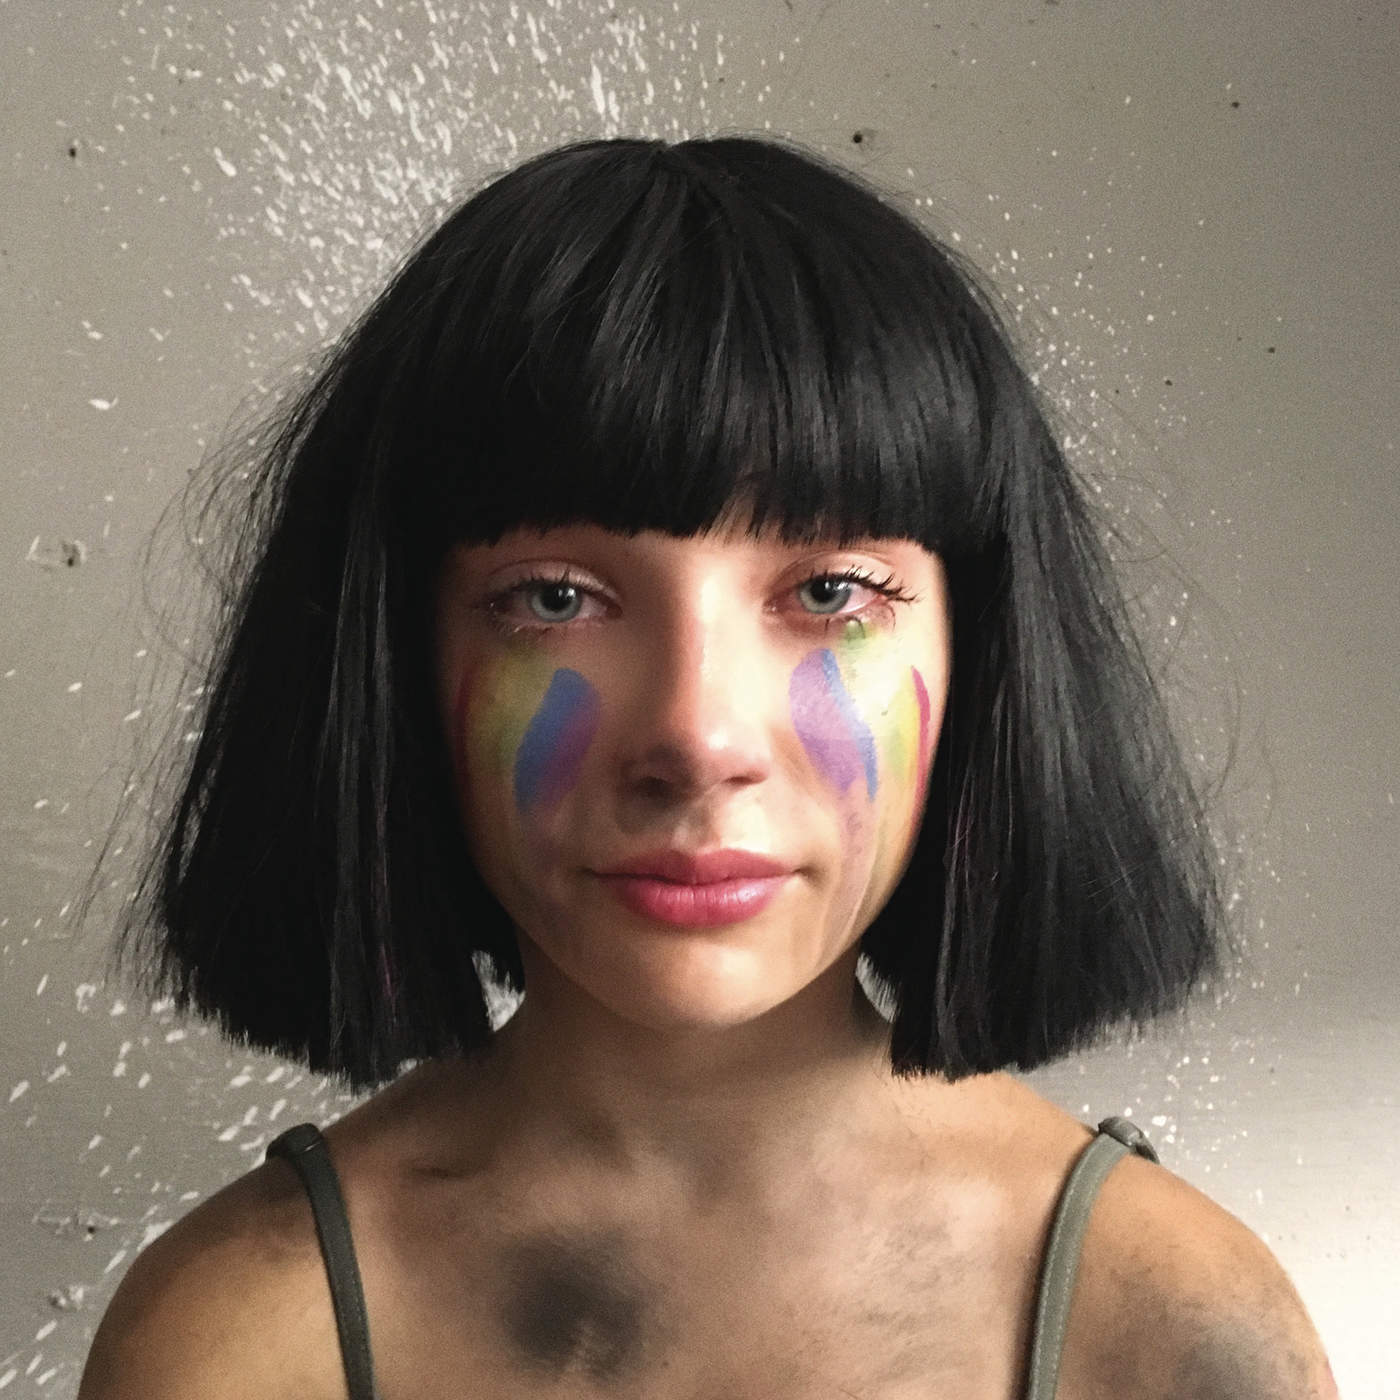 Sia unleashes new single 'The Greatest' featuring Kendrick Lamar